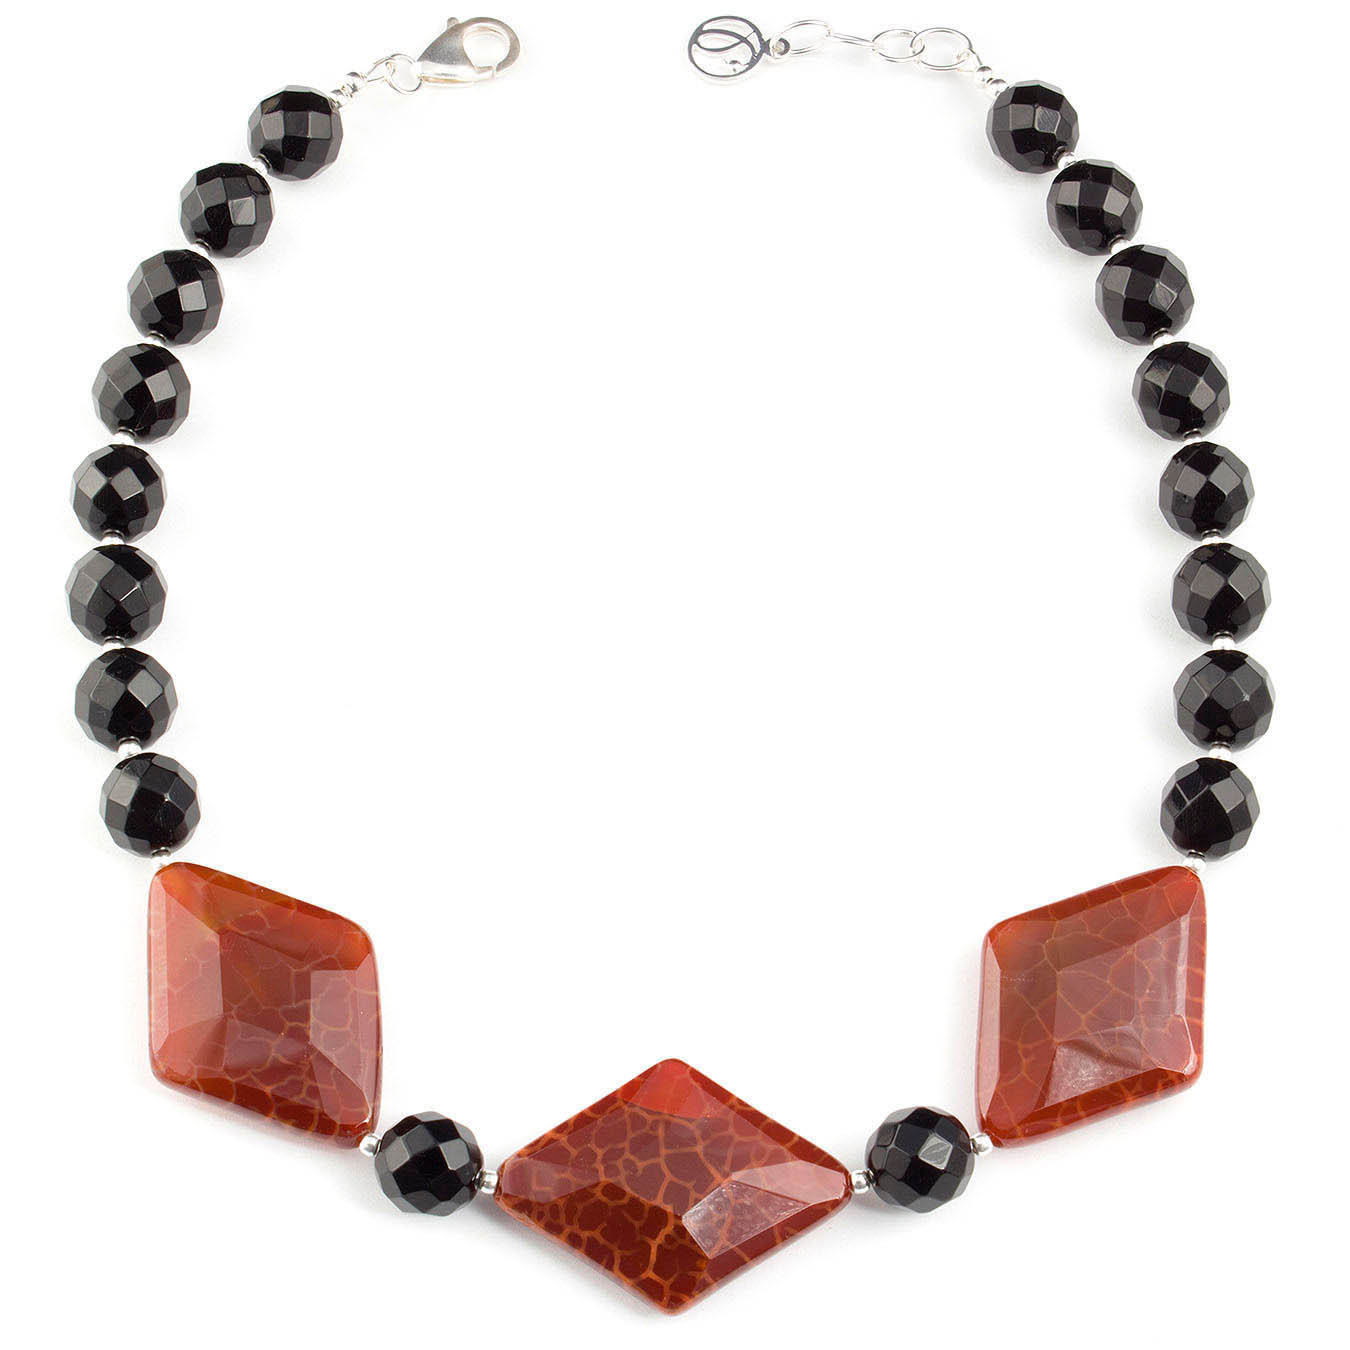 Handcrafted collar bead jewelry made with faceted black and fire agate